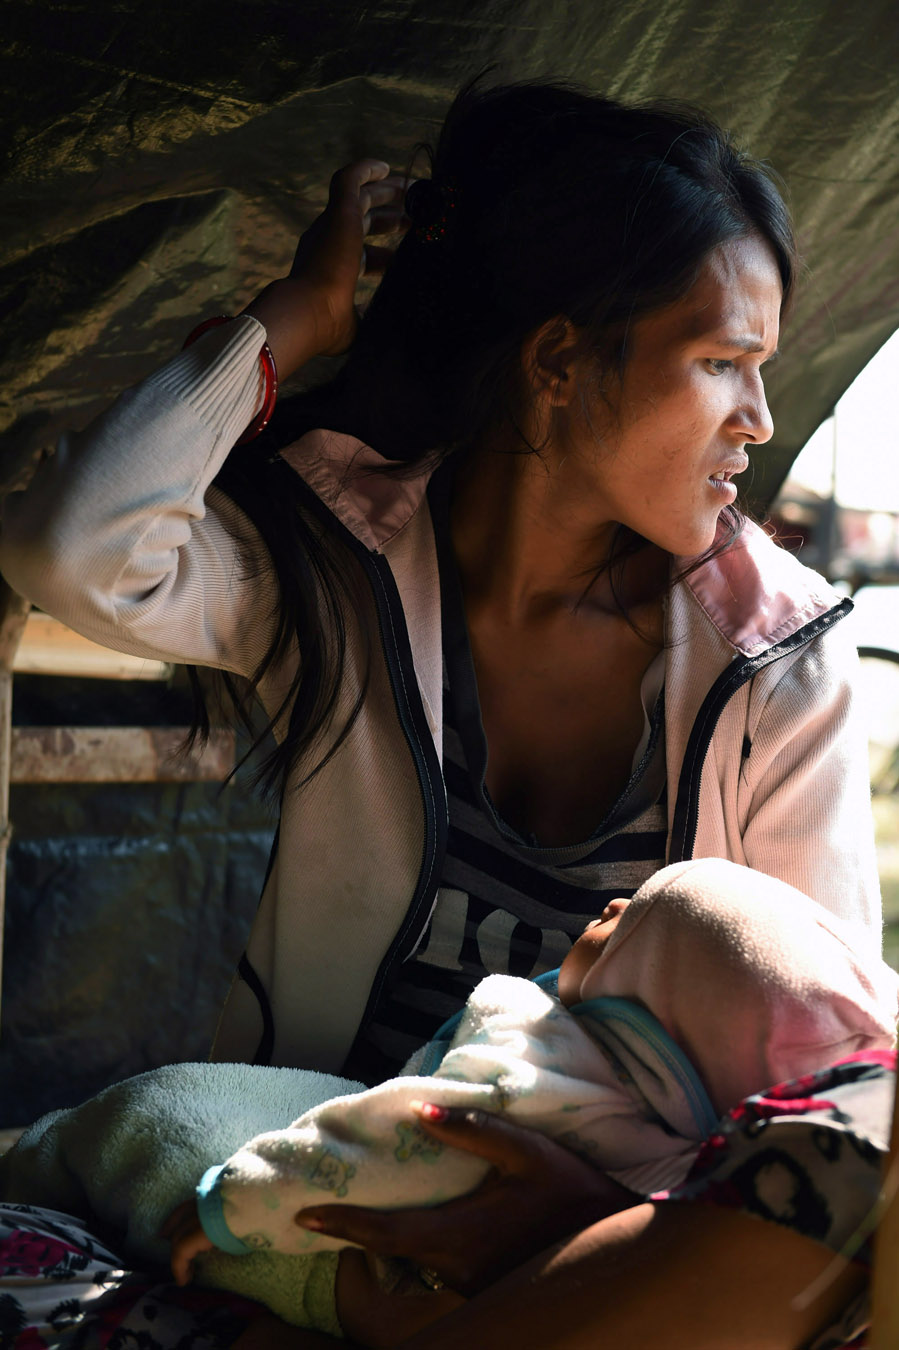 Widowed and displaced by the earthquake, Minu Nepali, 23, holds her unnamed youngest son as she now lives in a tent encampment on Tuesday May 05, 2015 in Kathmandu, Nepal. Her husband was killed in the earthquake that has killed thousands in Nepal. (Photo by Matt McClain/ The Washington Post)